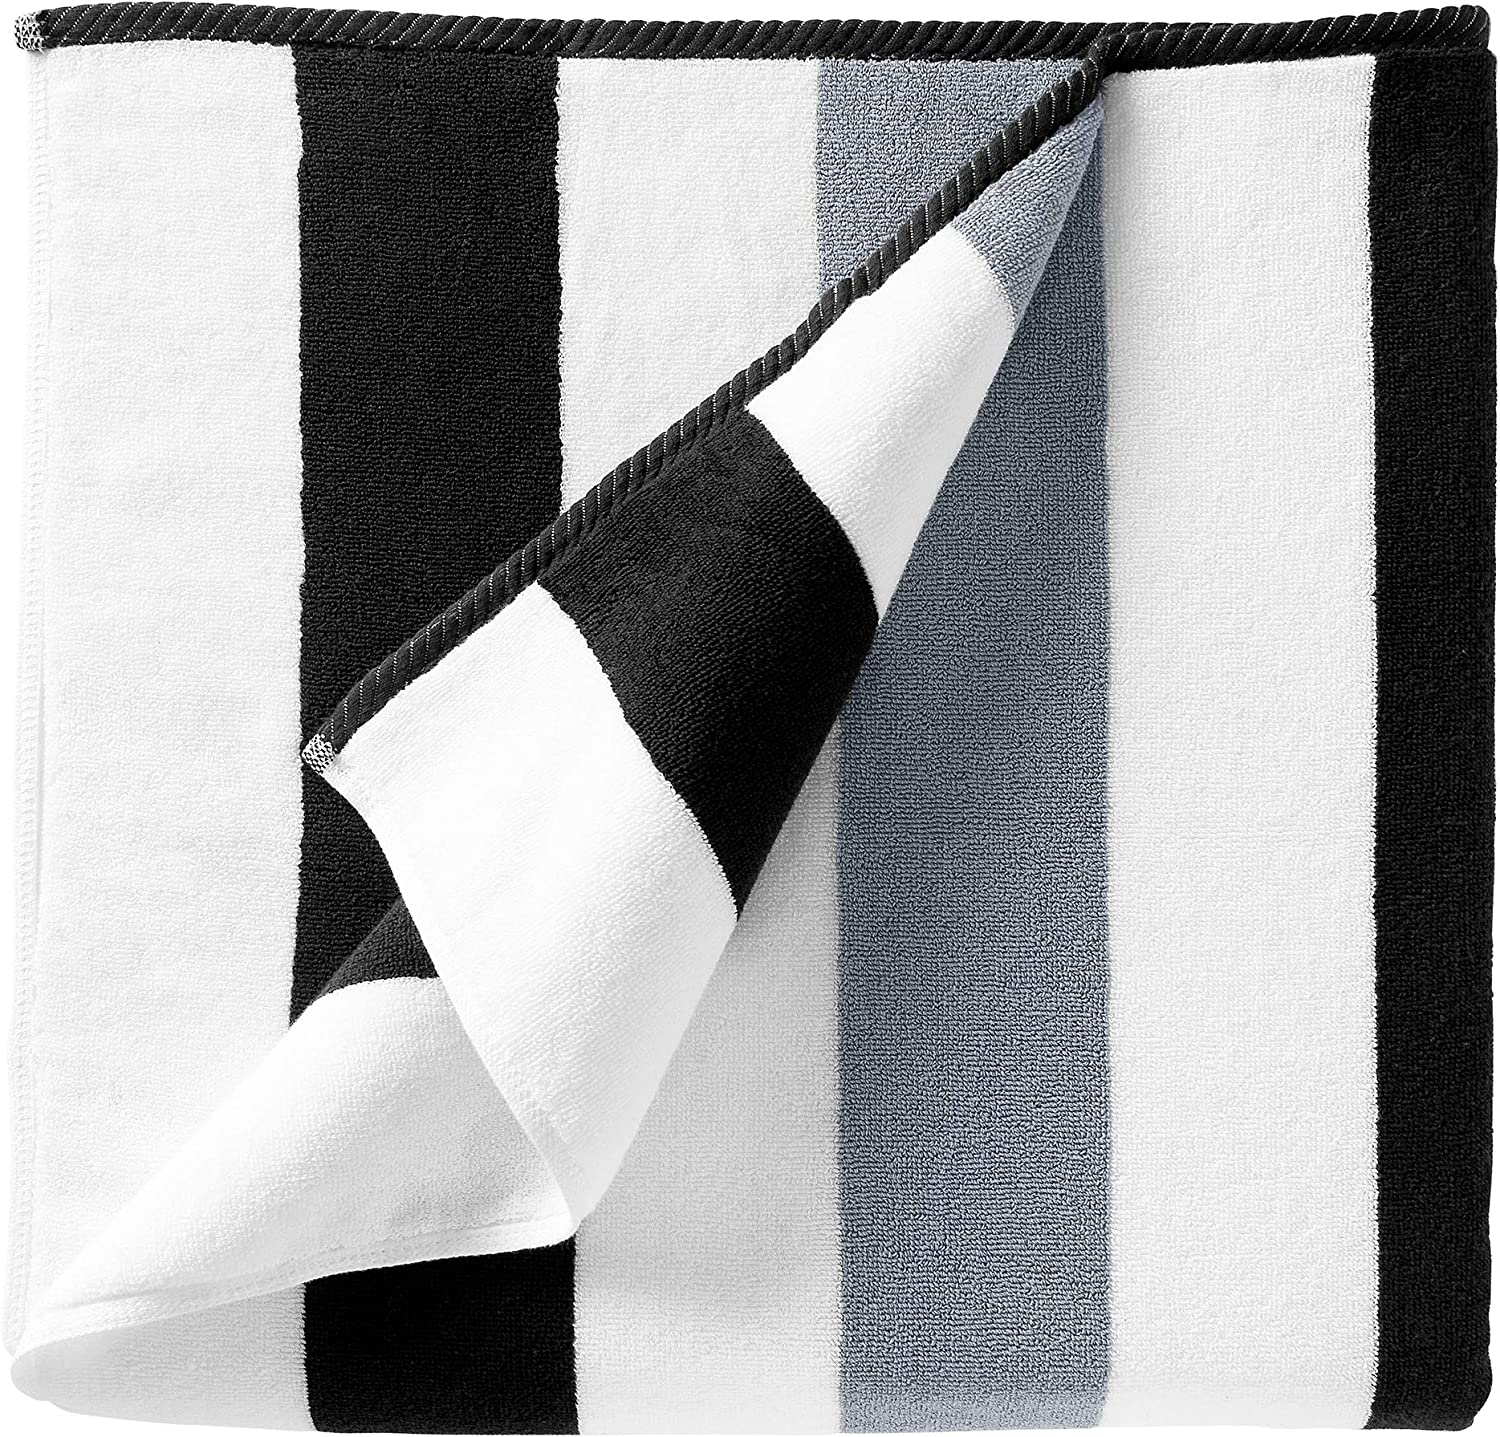 Cabana Beach Towel - Oversized Black & Gray Summer Sunbathing and Pool Side Lounge Comfort